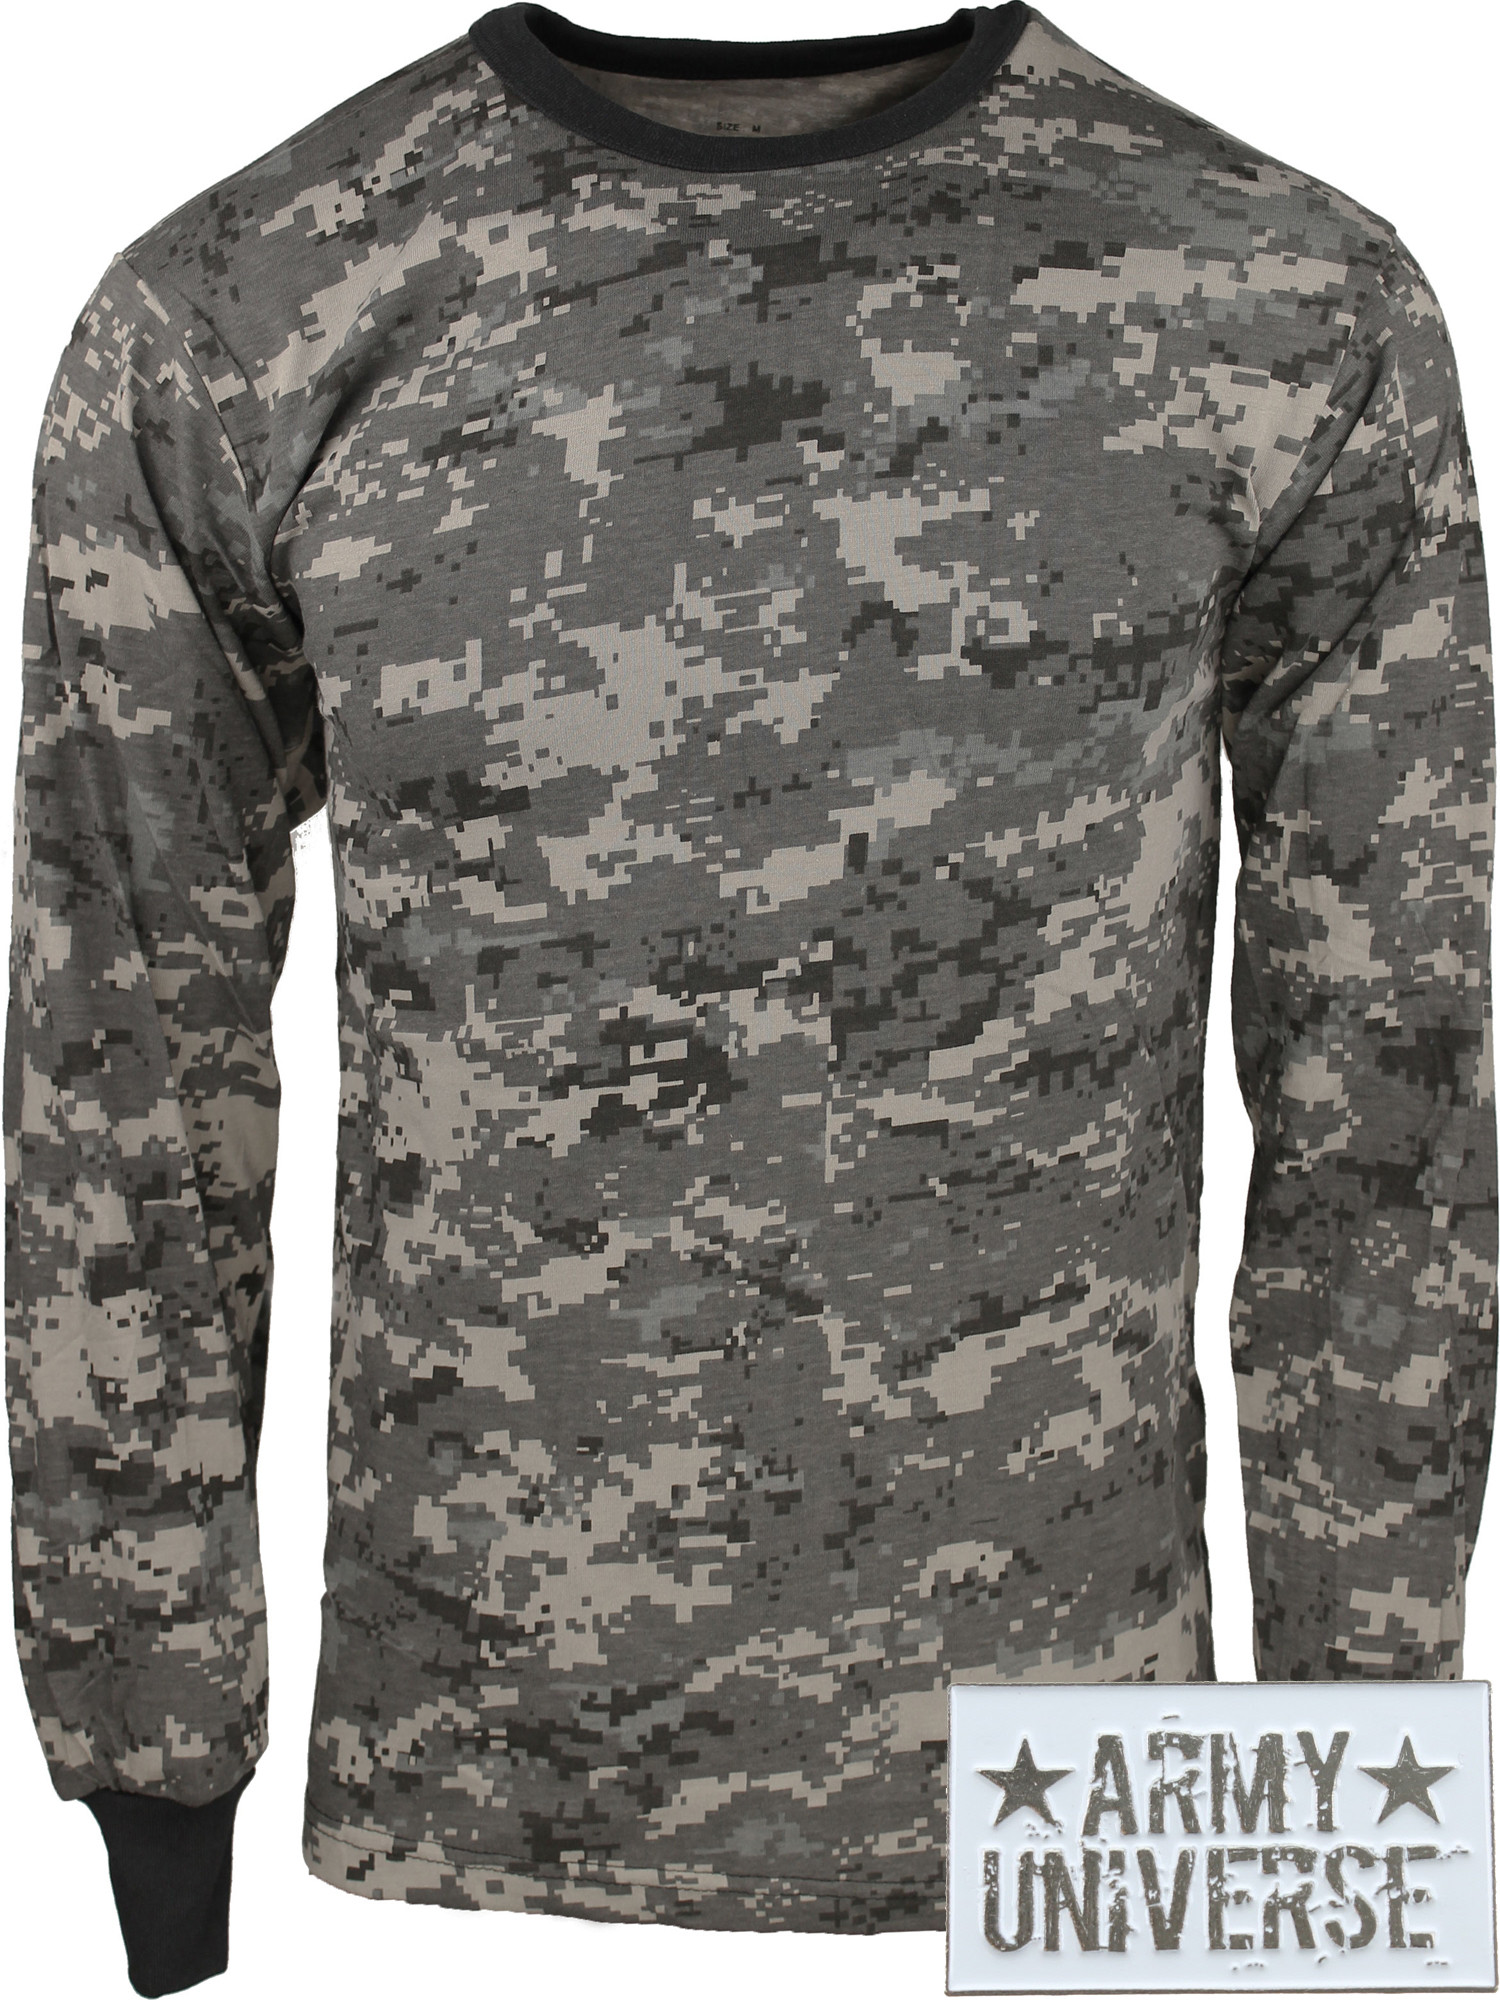 ... Subdued Urban Digital Camouflage Military Crewneck Long Sleeve T Shirt  w  ArmyUniverse® Pin ... 8d0994e8dfb